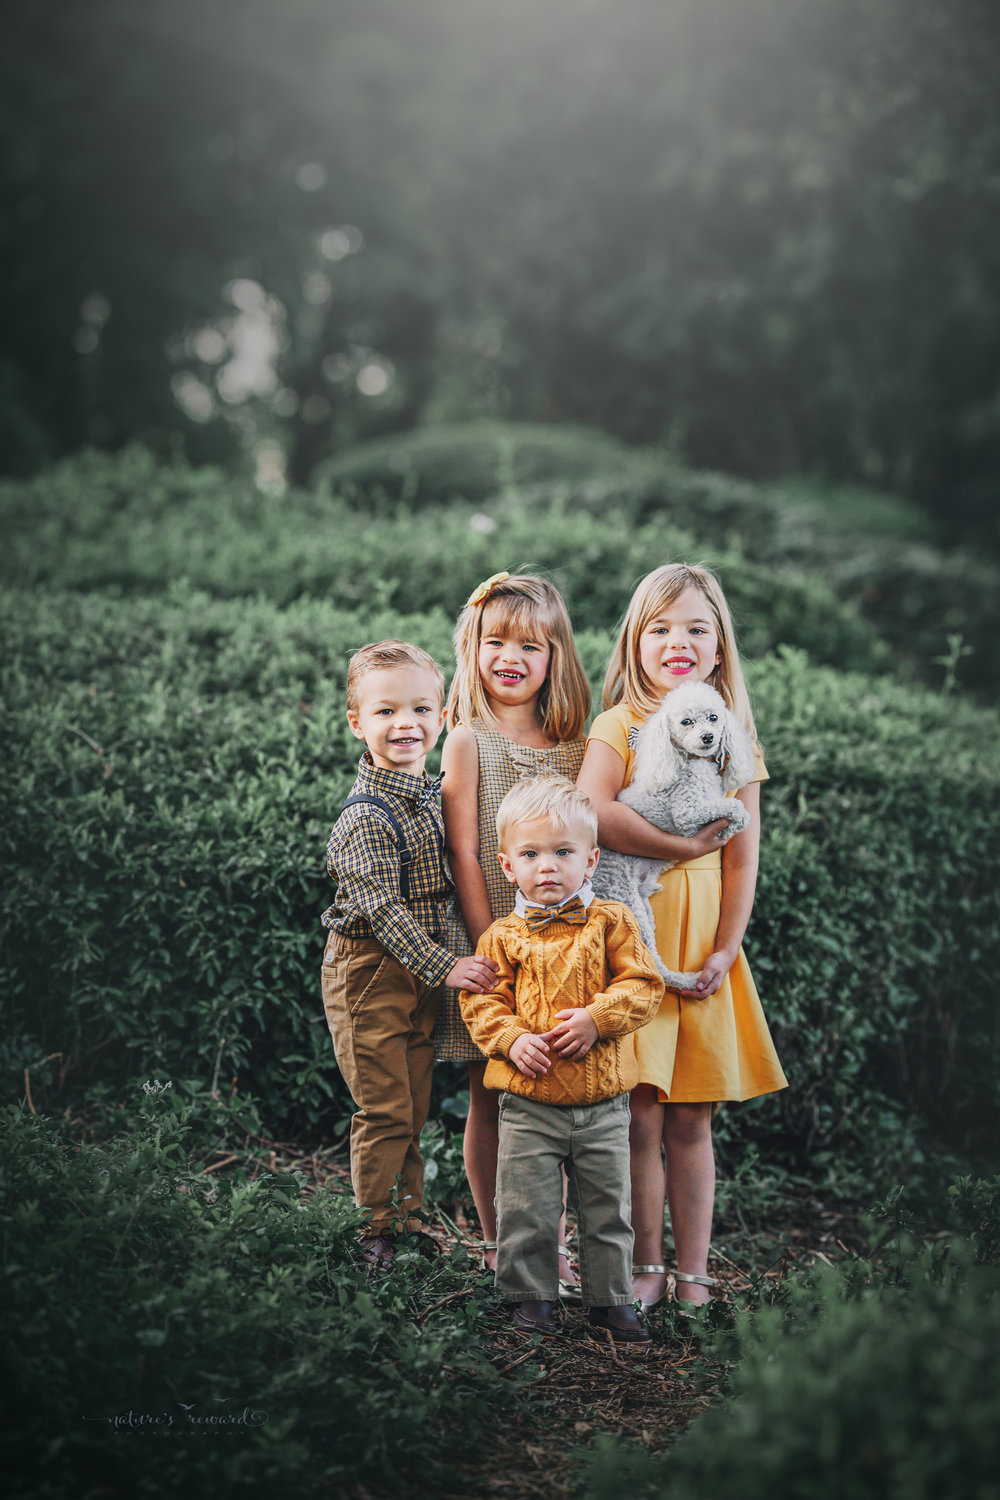 Beautiful sibling portrait in yellows and tan in a green lush park setting with their furry  little brother- A portrait By Nature's Reward Photography!